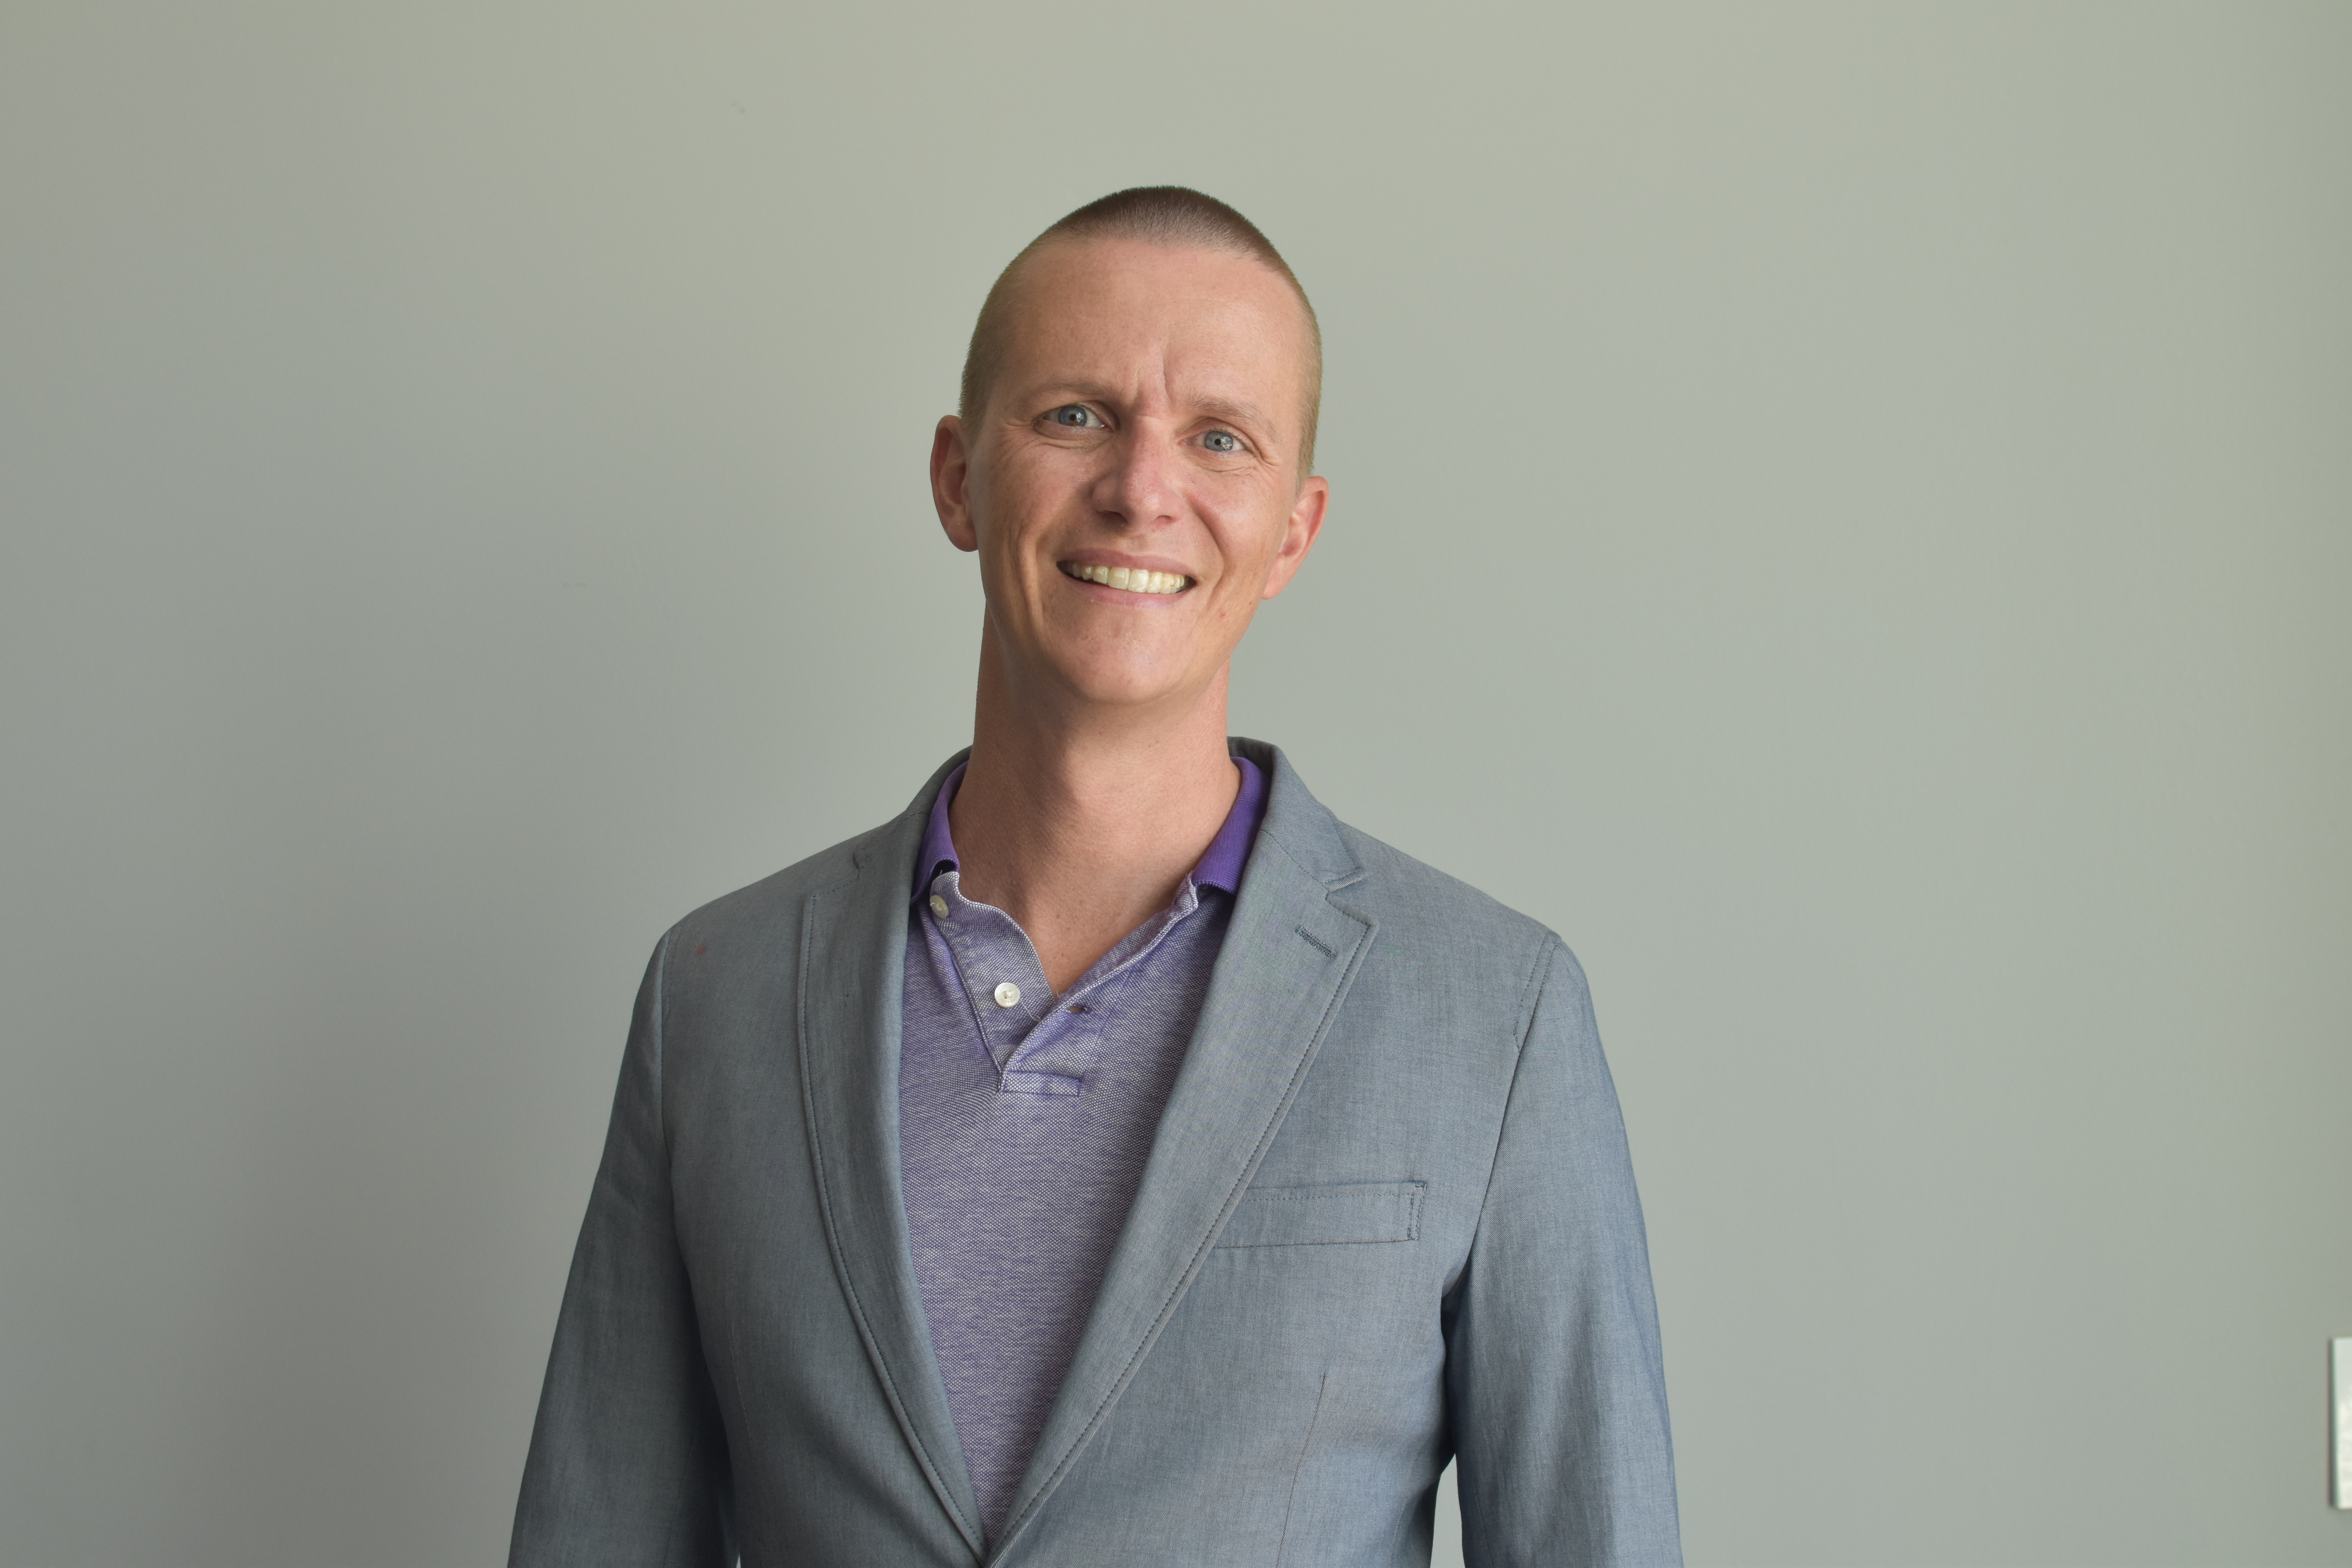 Tim Grivois-Shah is wearing a purple shirt with a collar and a grey sport coat. He is smiling. The background is grey.